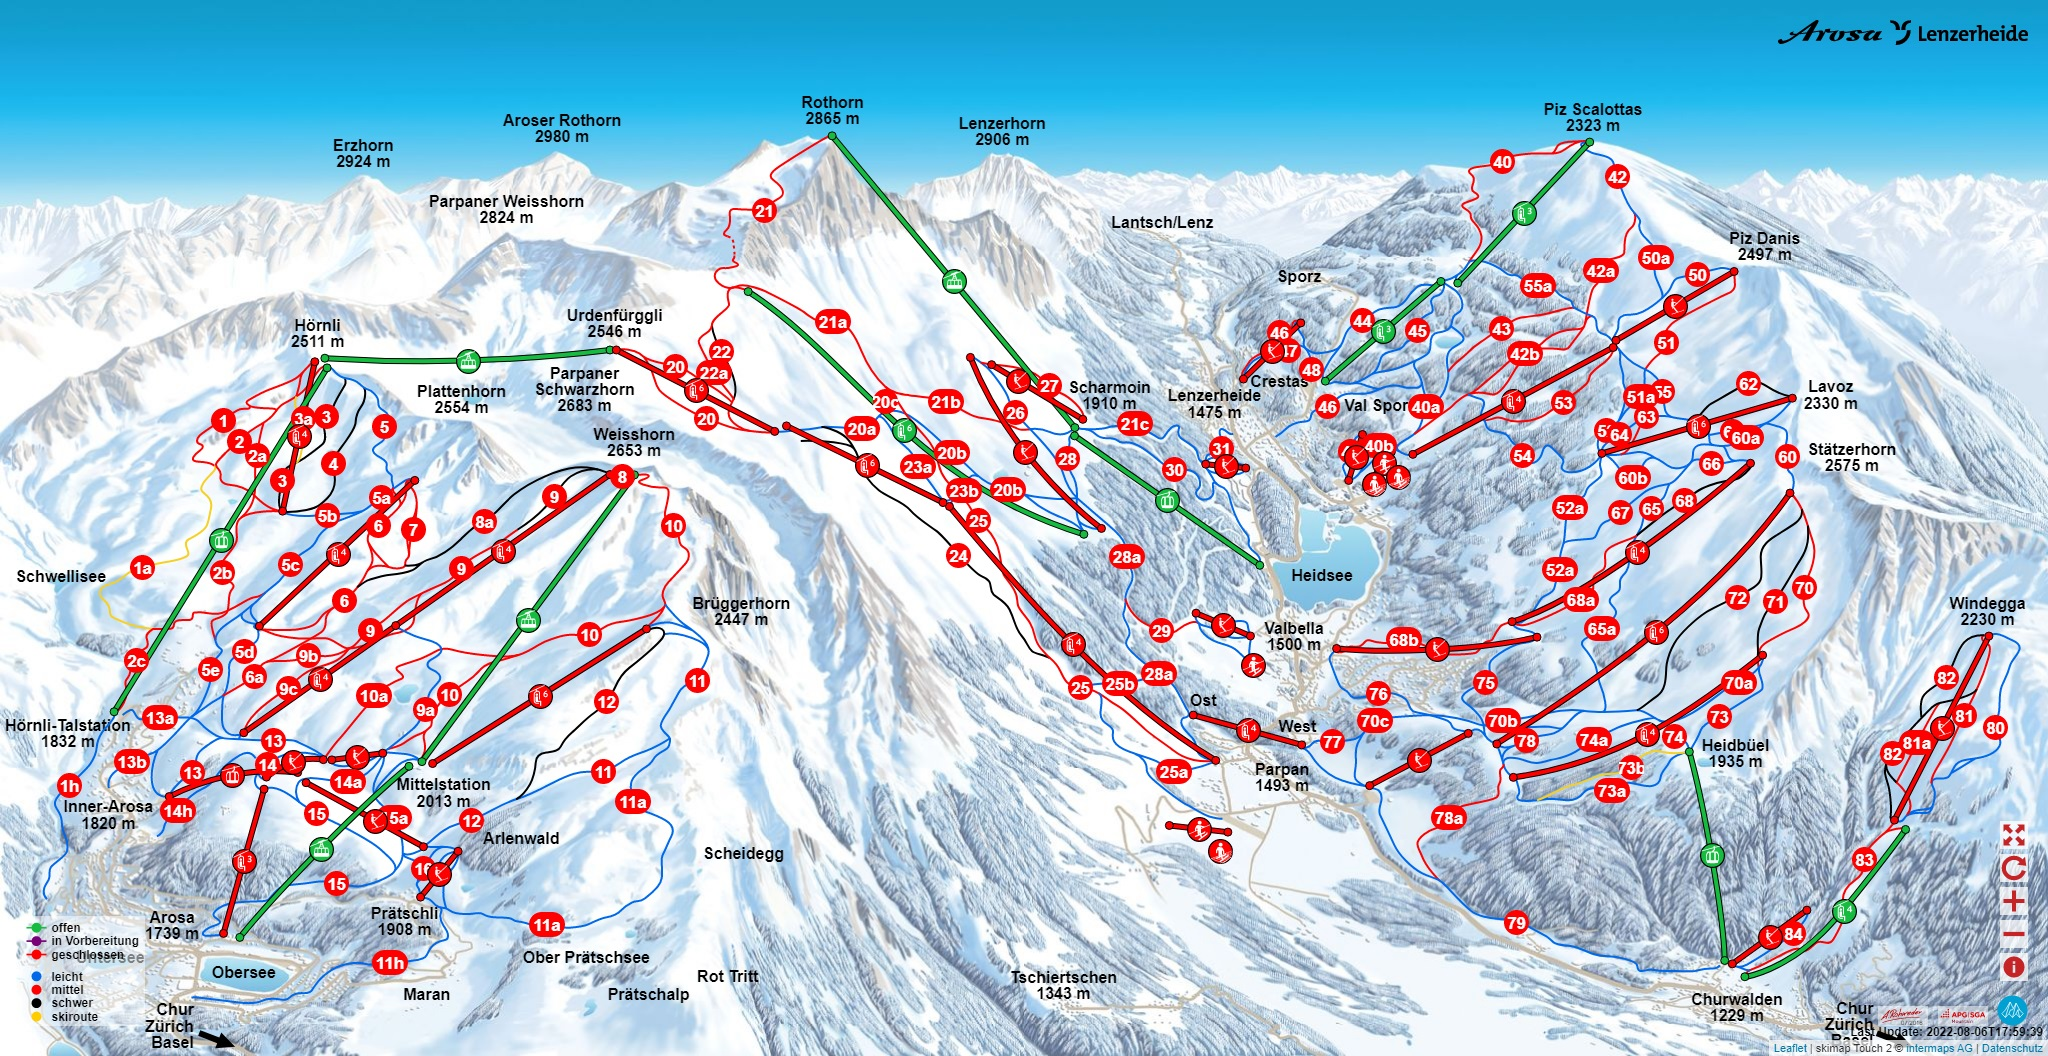 iSKI Ski Resort Arosa Lenzerheide closed